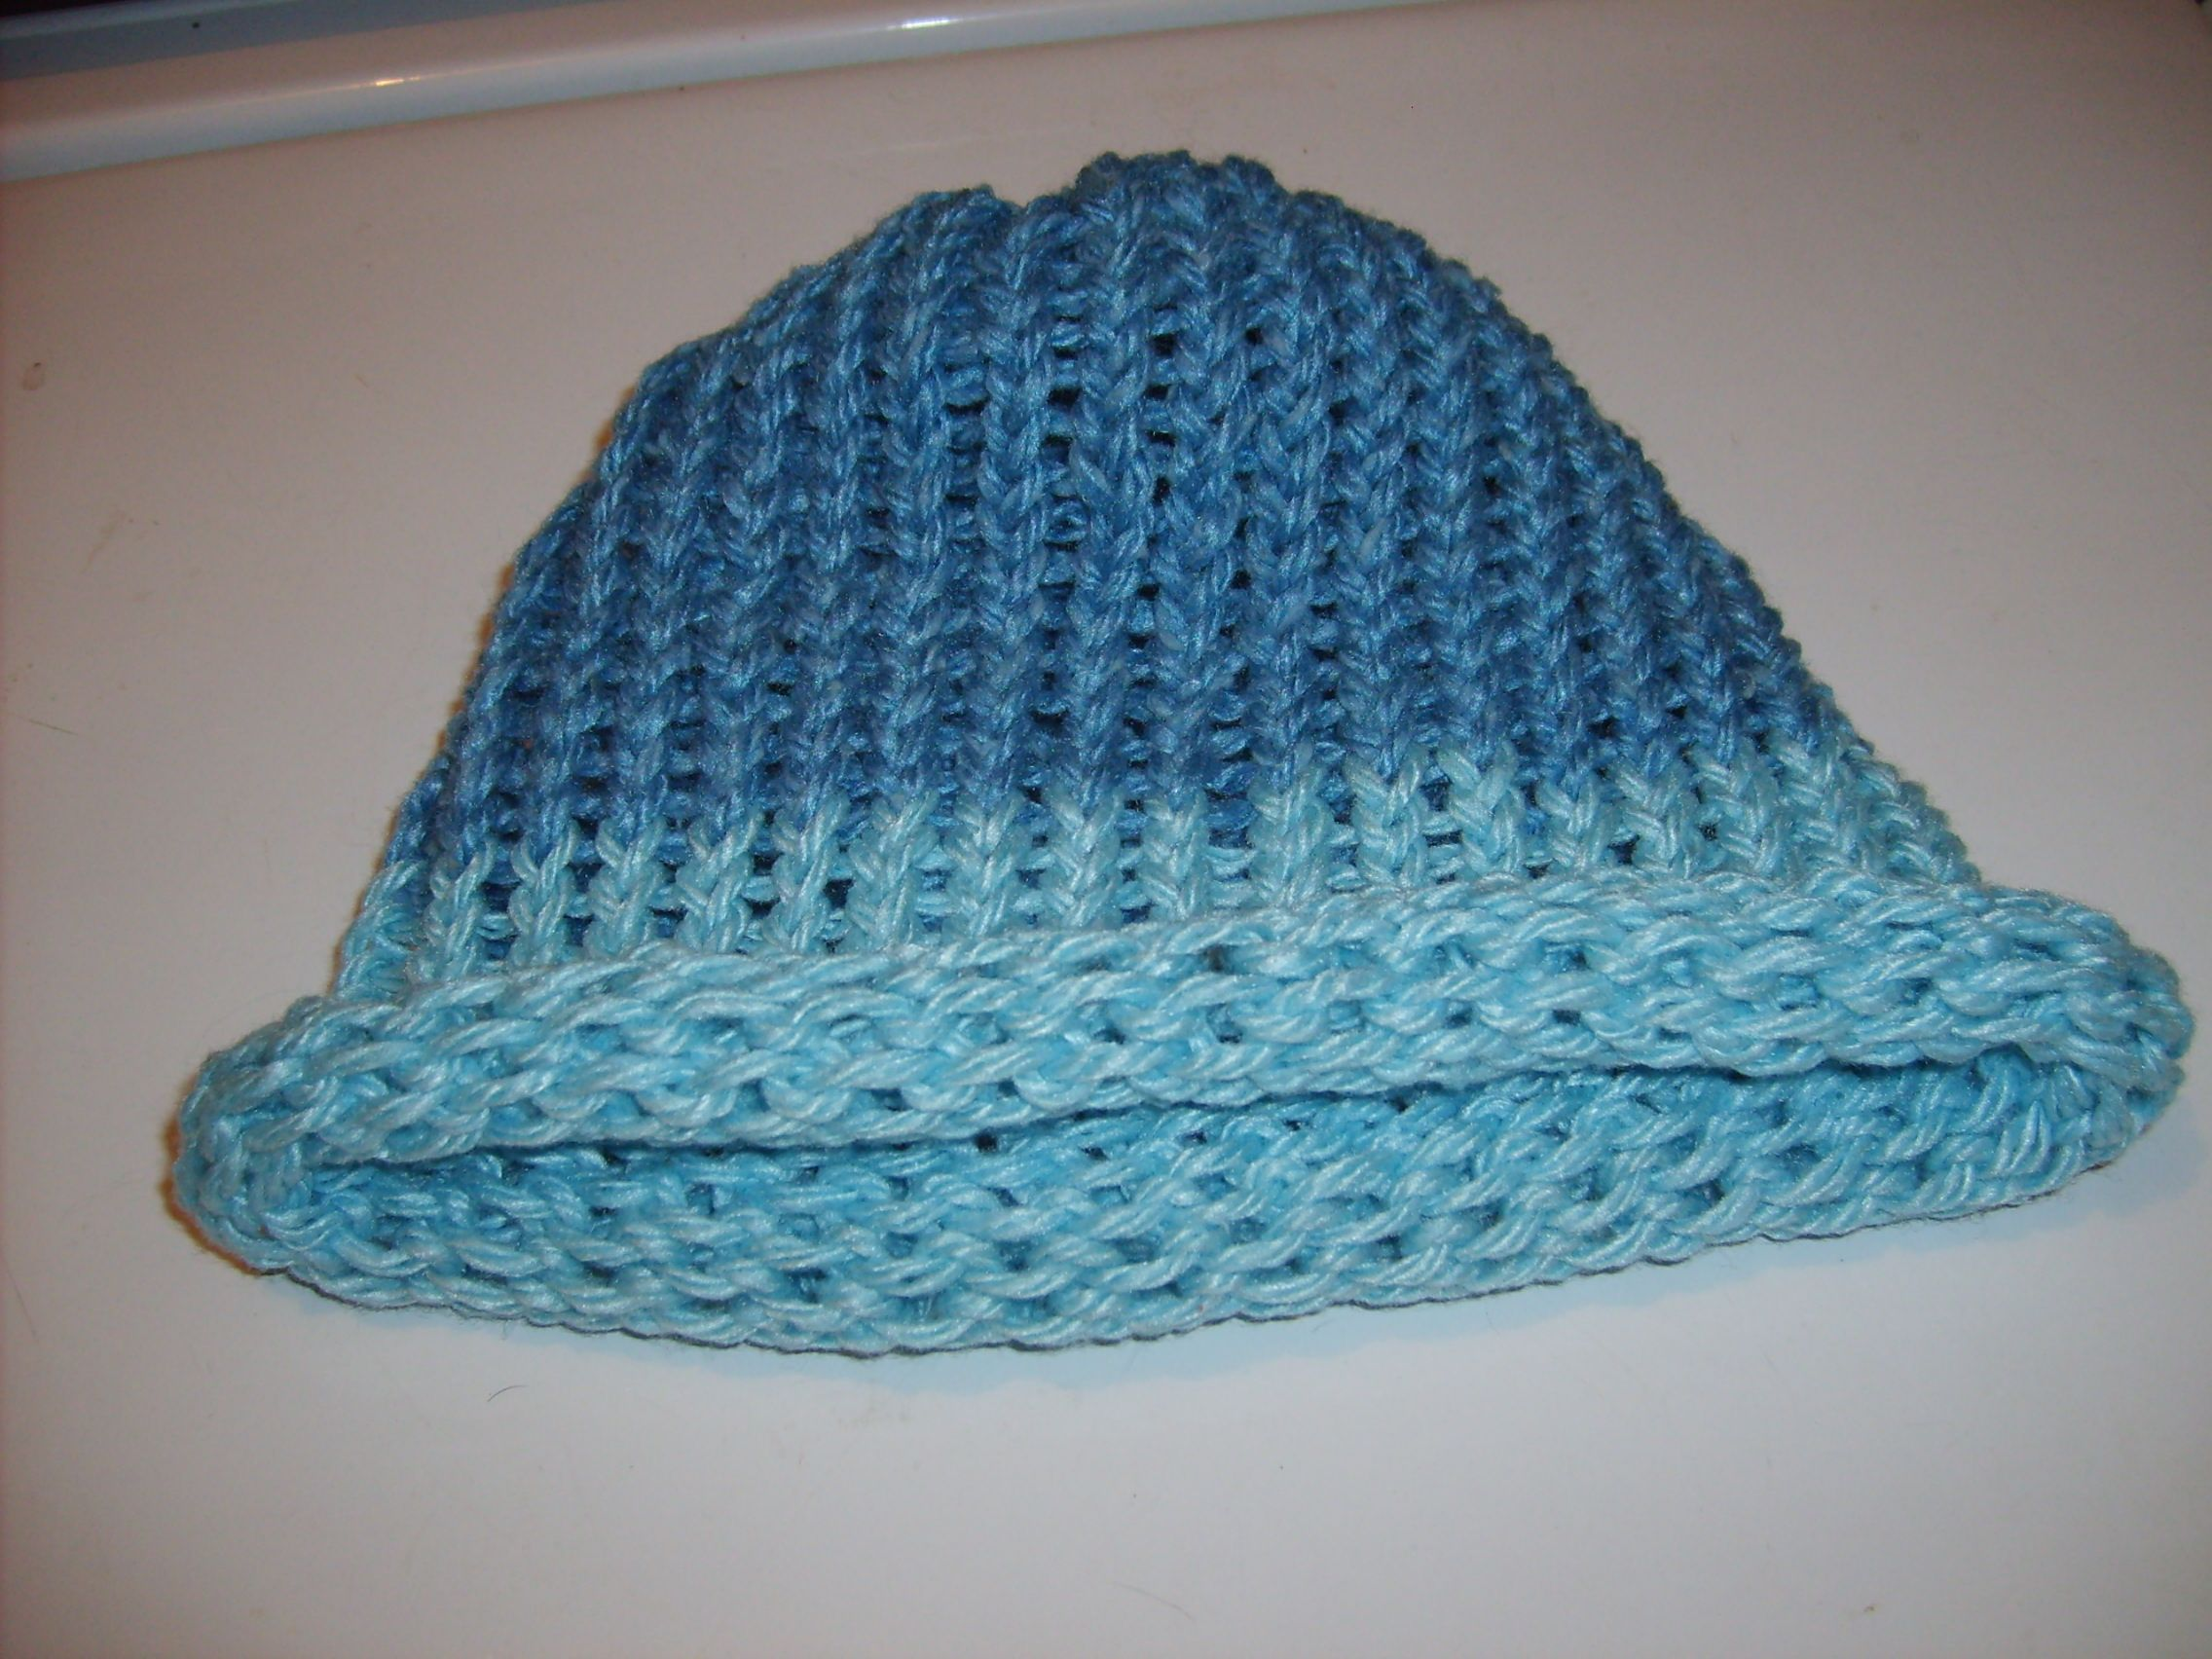 Fun Loom Knitting Patterns : Adult Loomed Knitted Hat. Loom Knitting Fun Pinterest